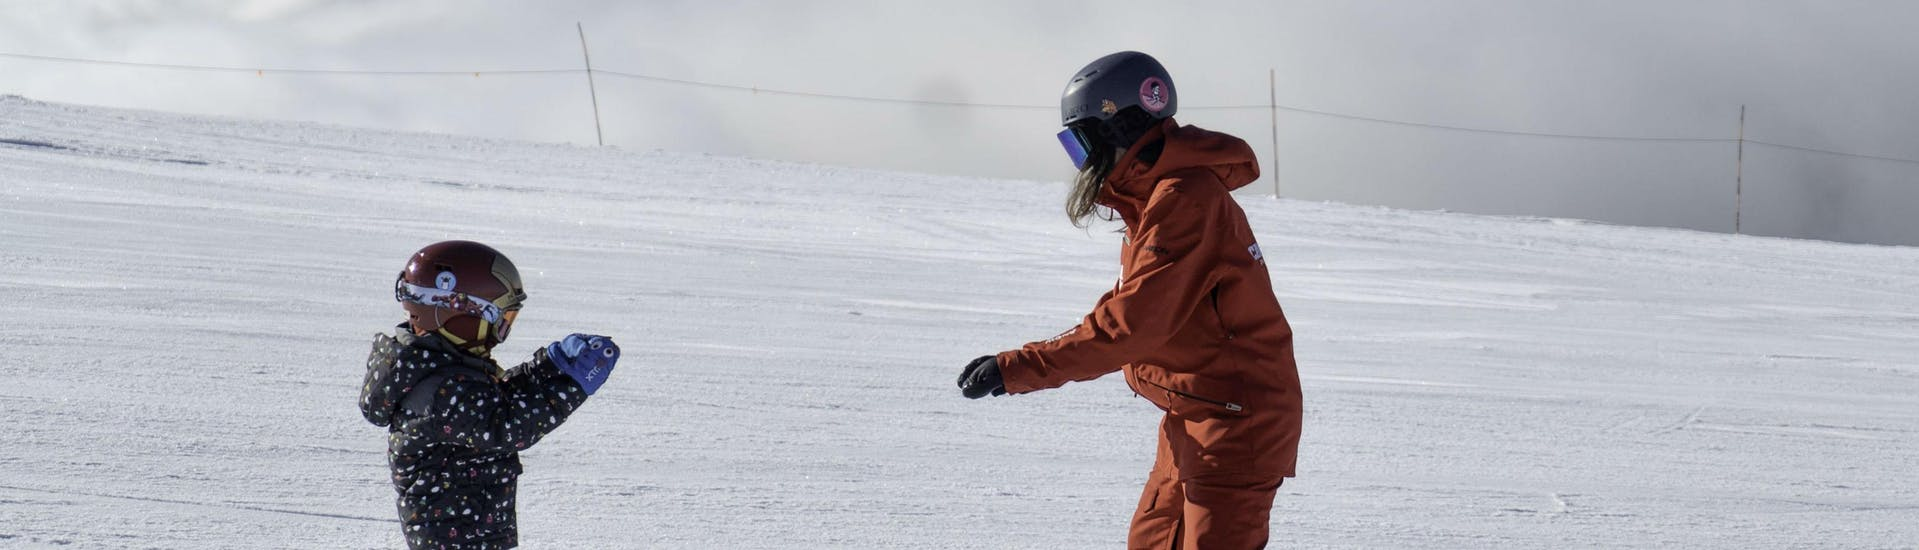 Kids Ski Lessons (3½-4 years) - First Timer - With Transfer